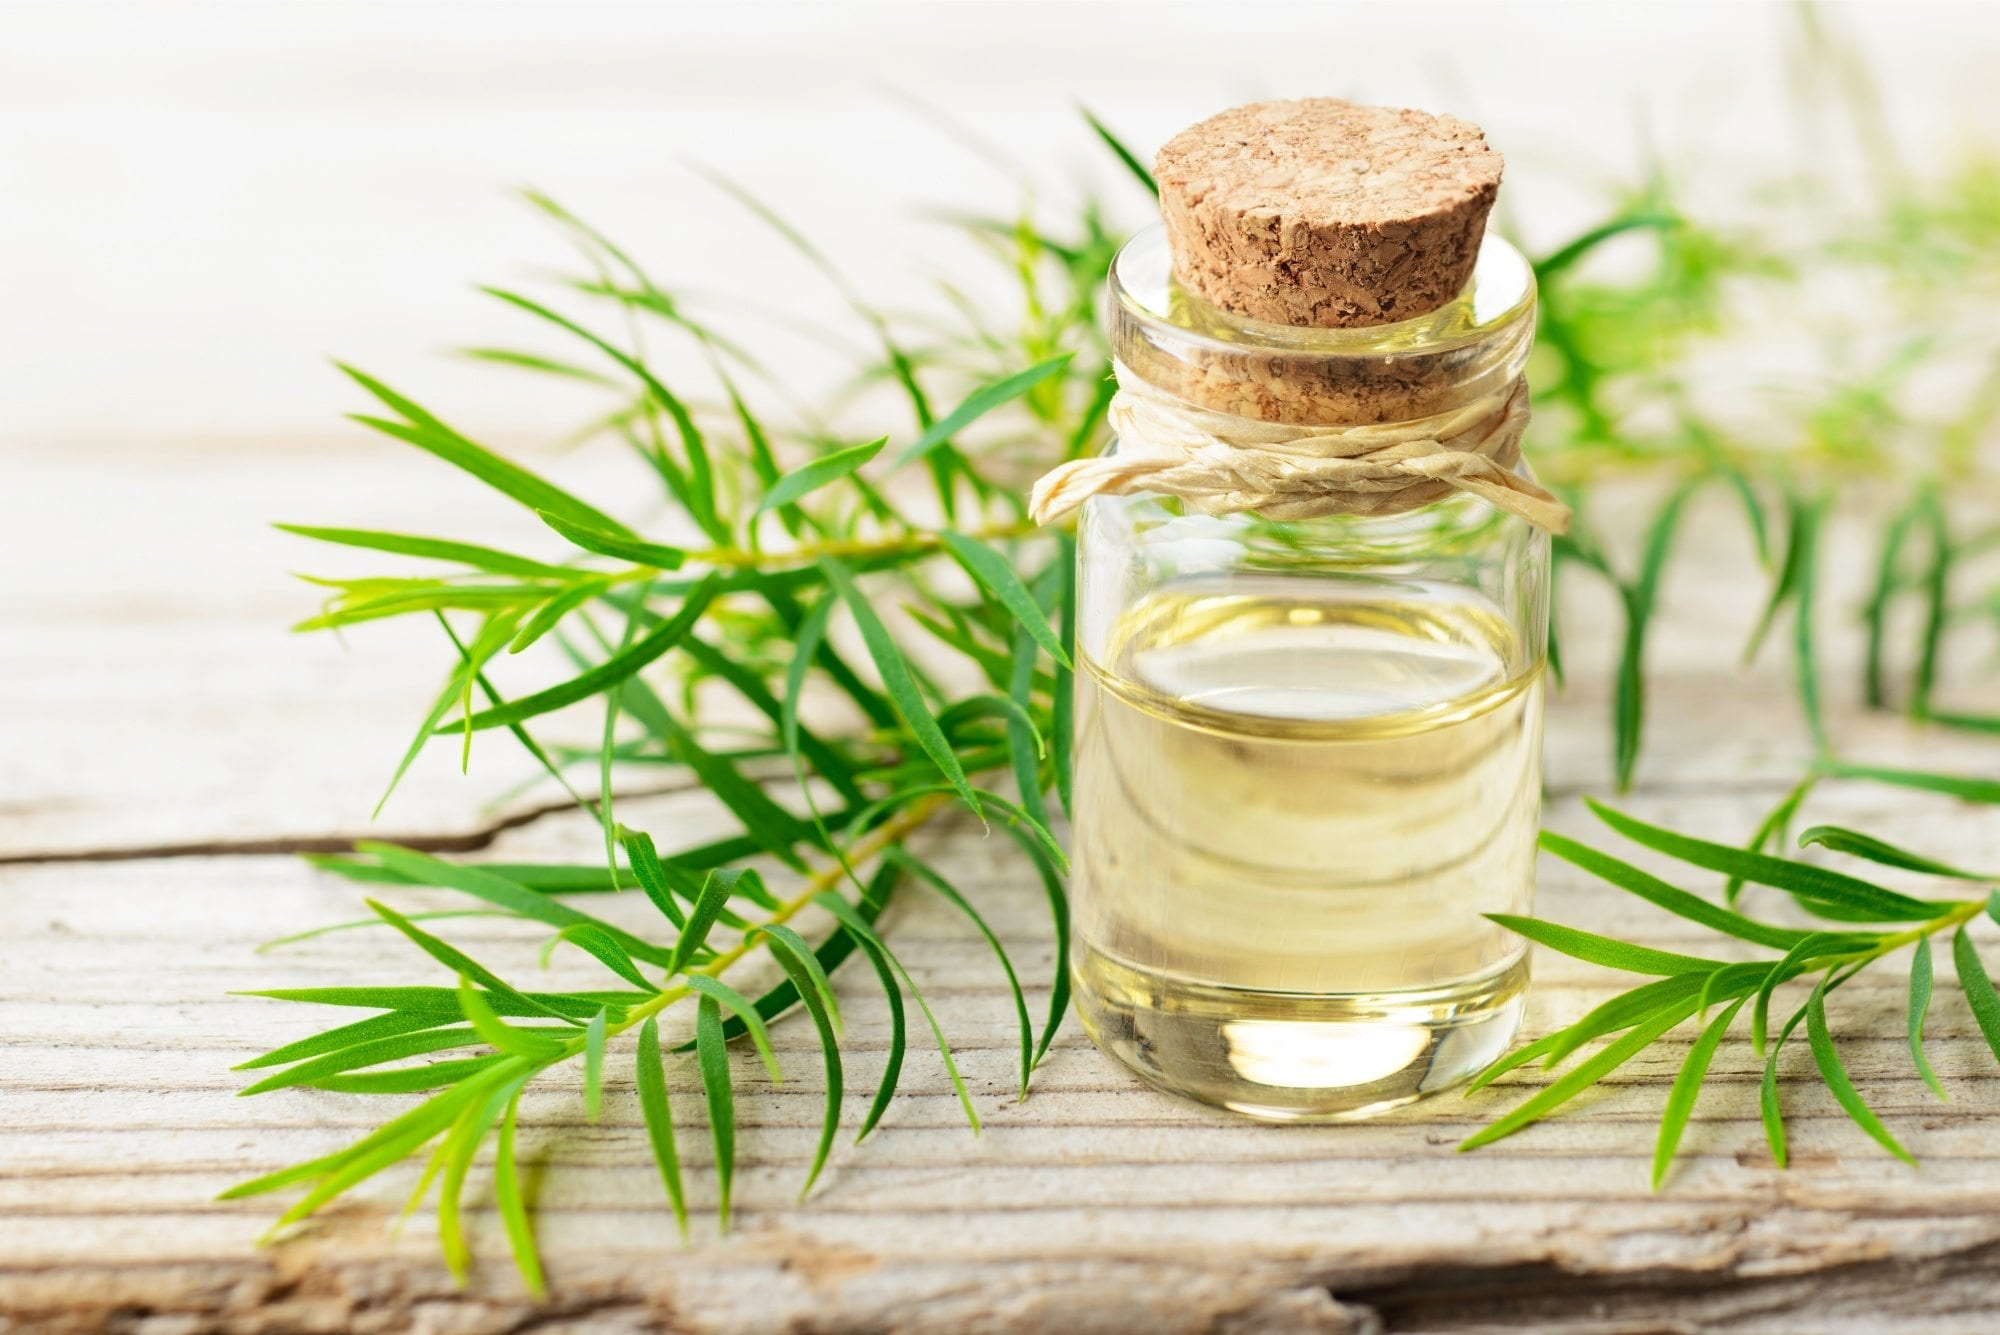 Natural dandruff remedies: a bottle of tea tree oil with a fig of tea tree on a plank of wood